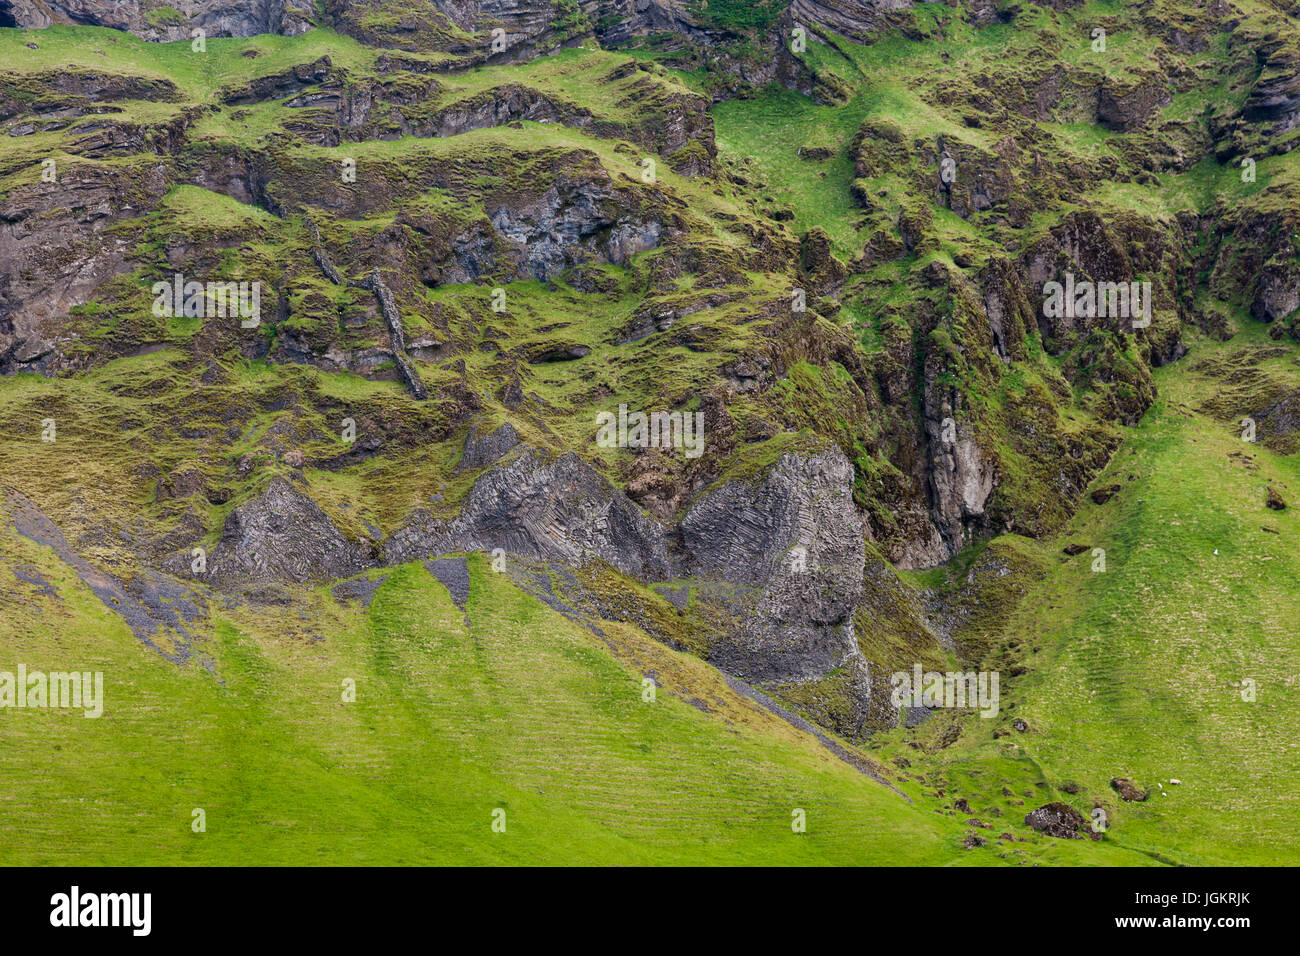 Abstract textural image of Basalt cliffs and the transition to sheep grazing meadows in Iceland - Stock Image